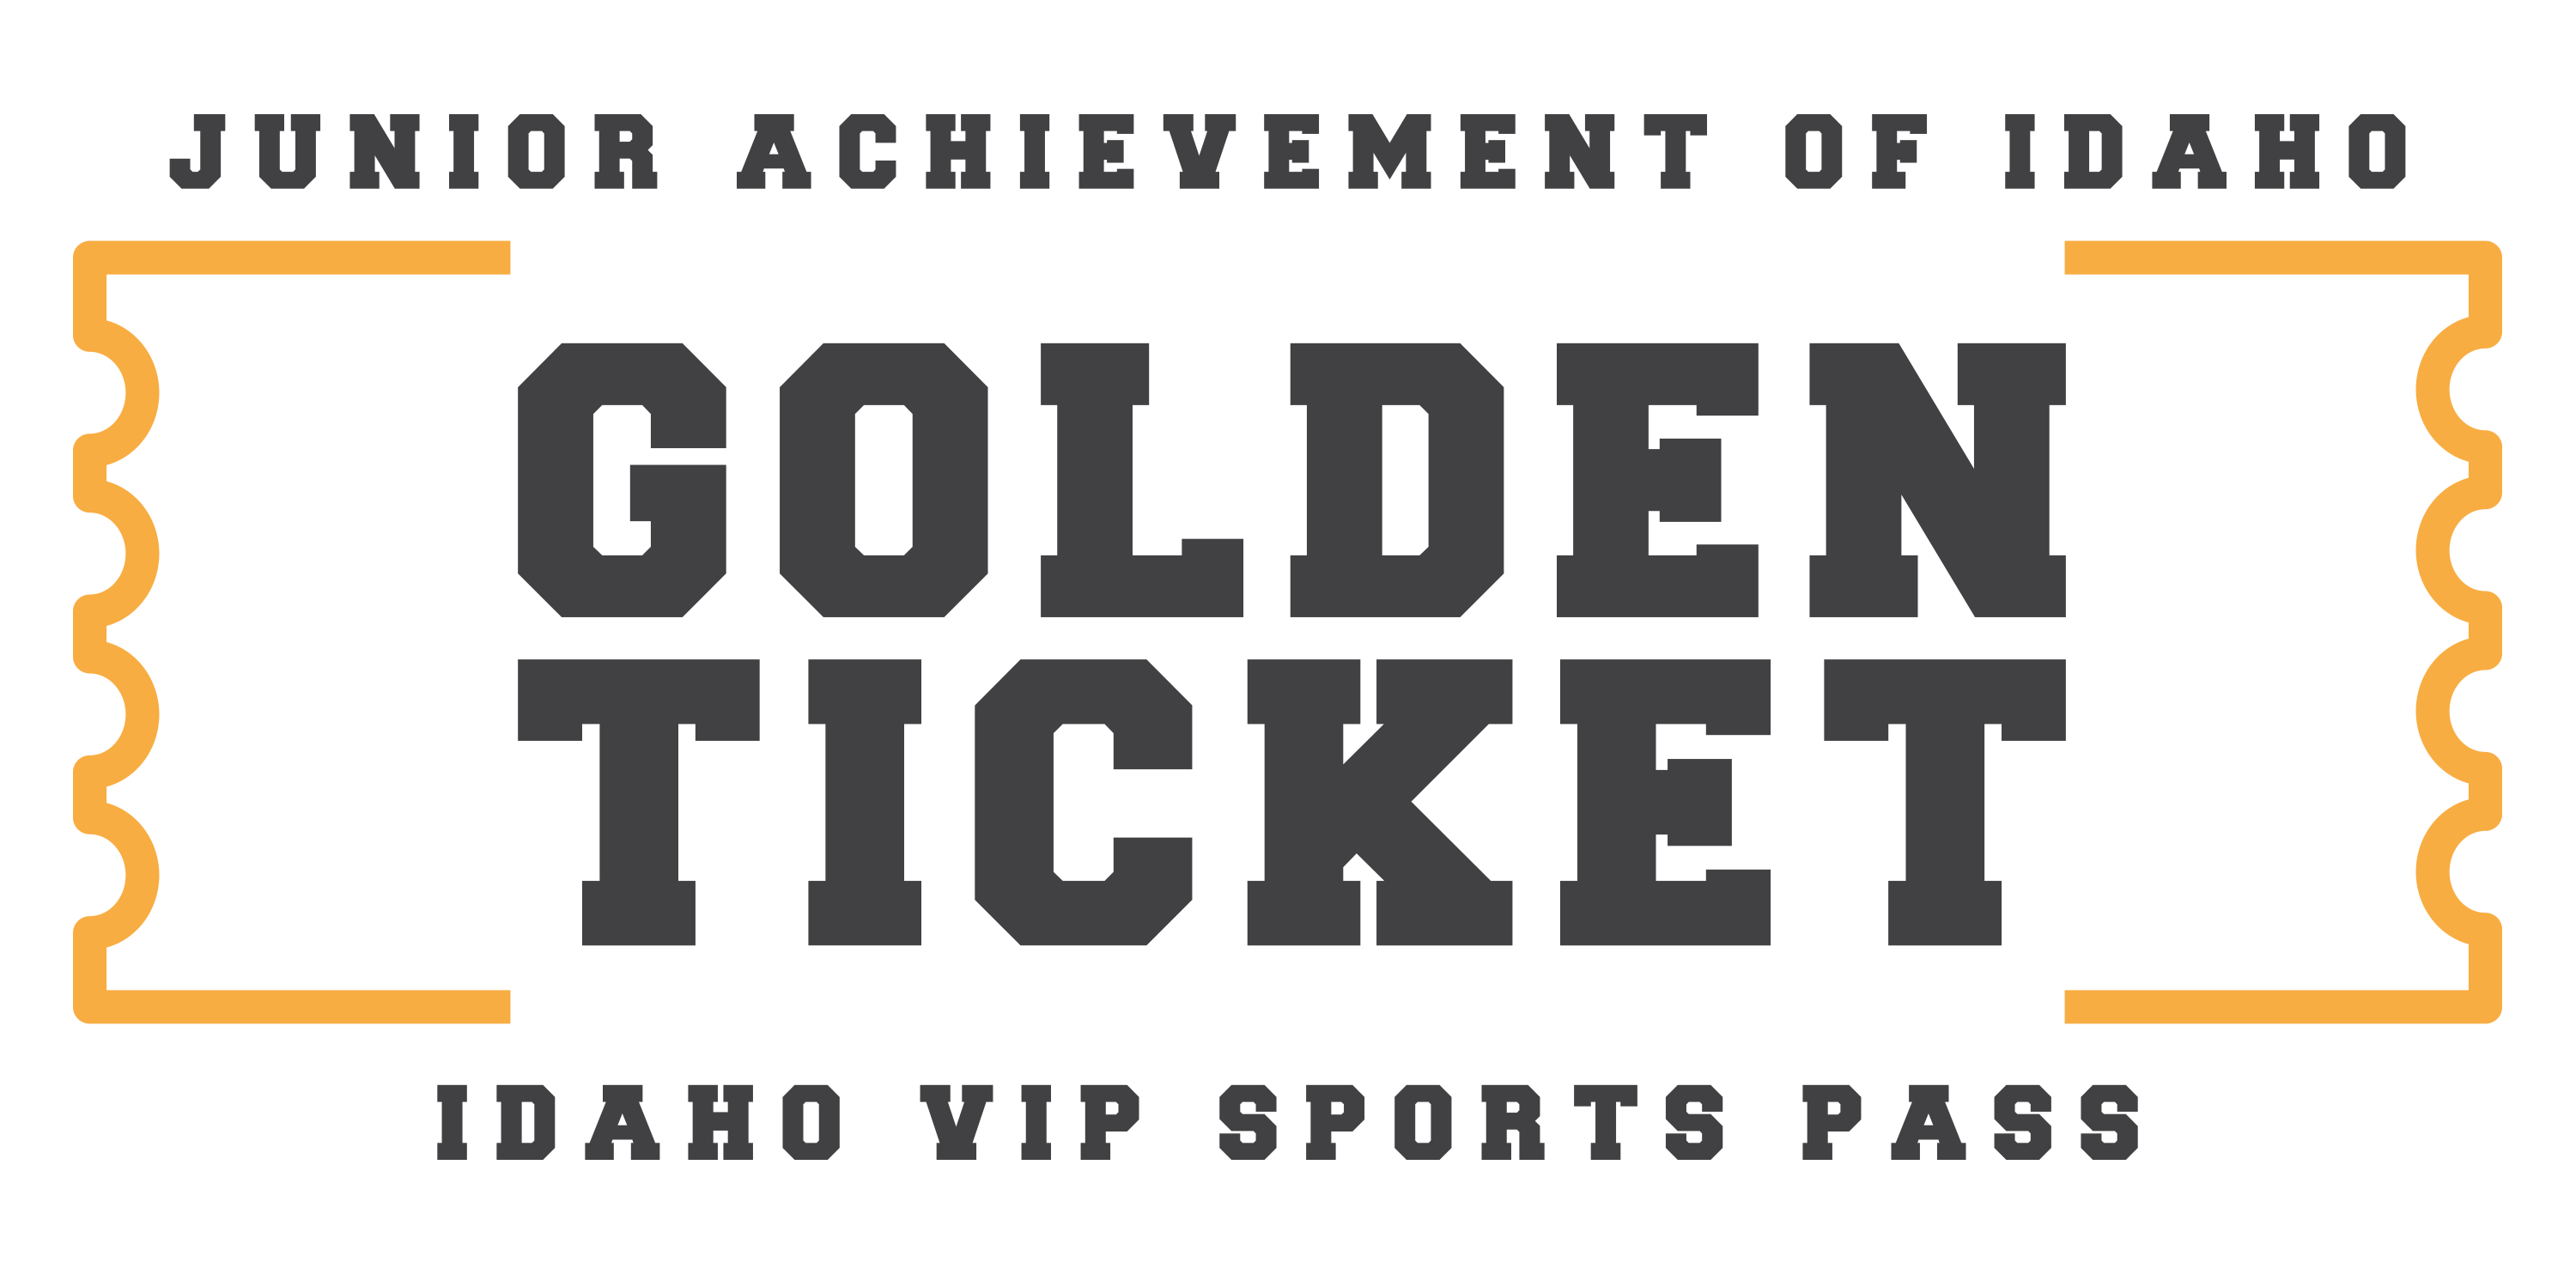 Idaho Golden Ticket